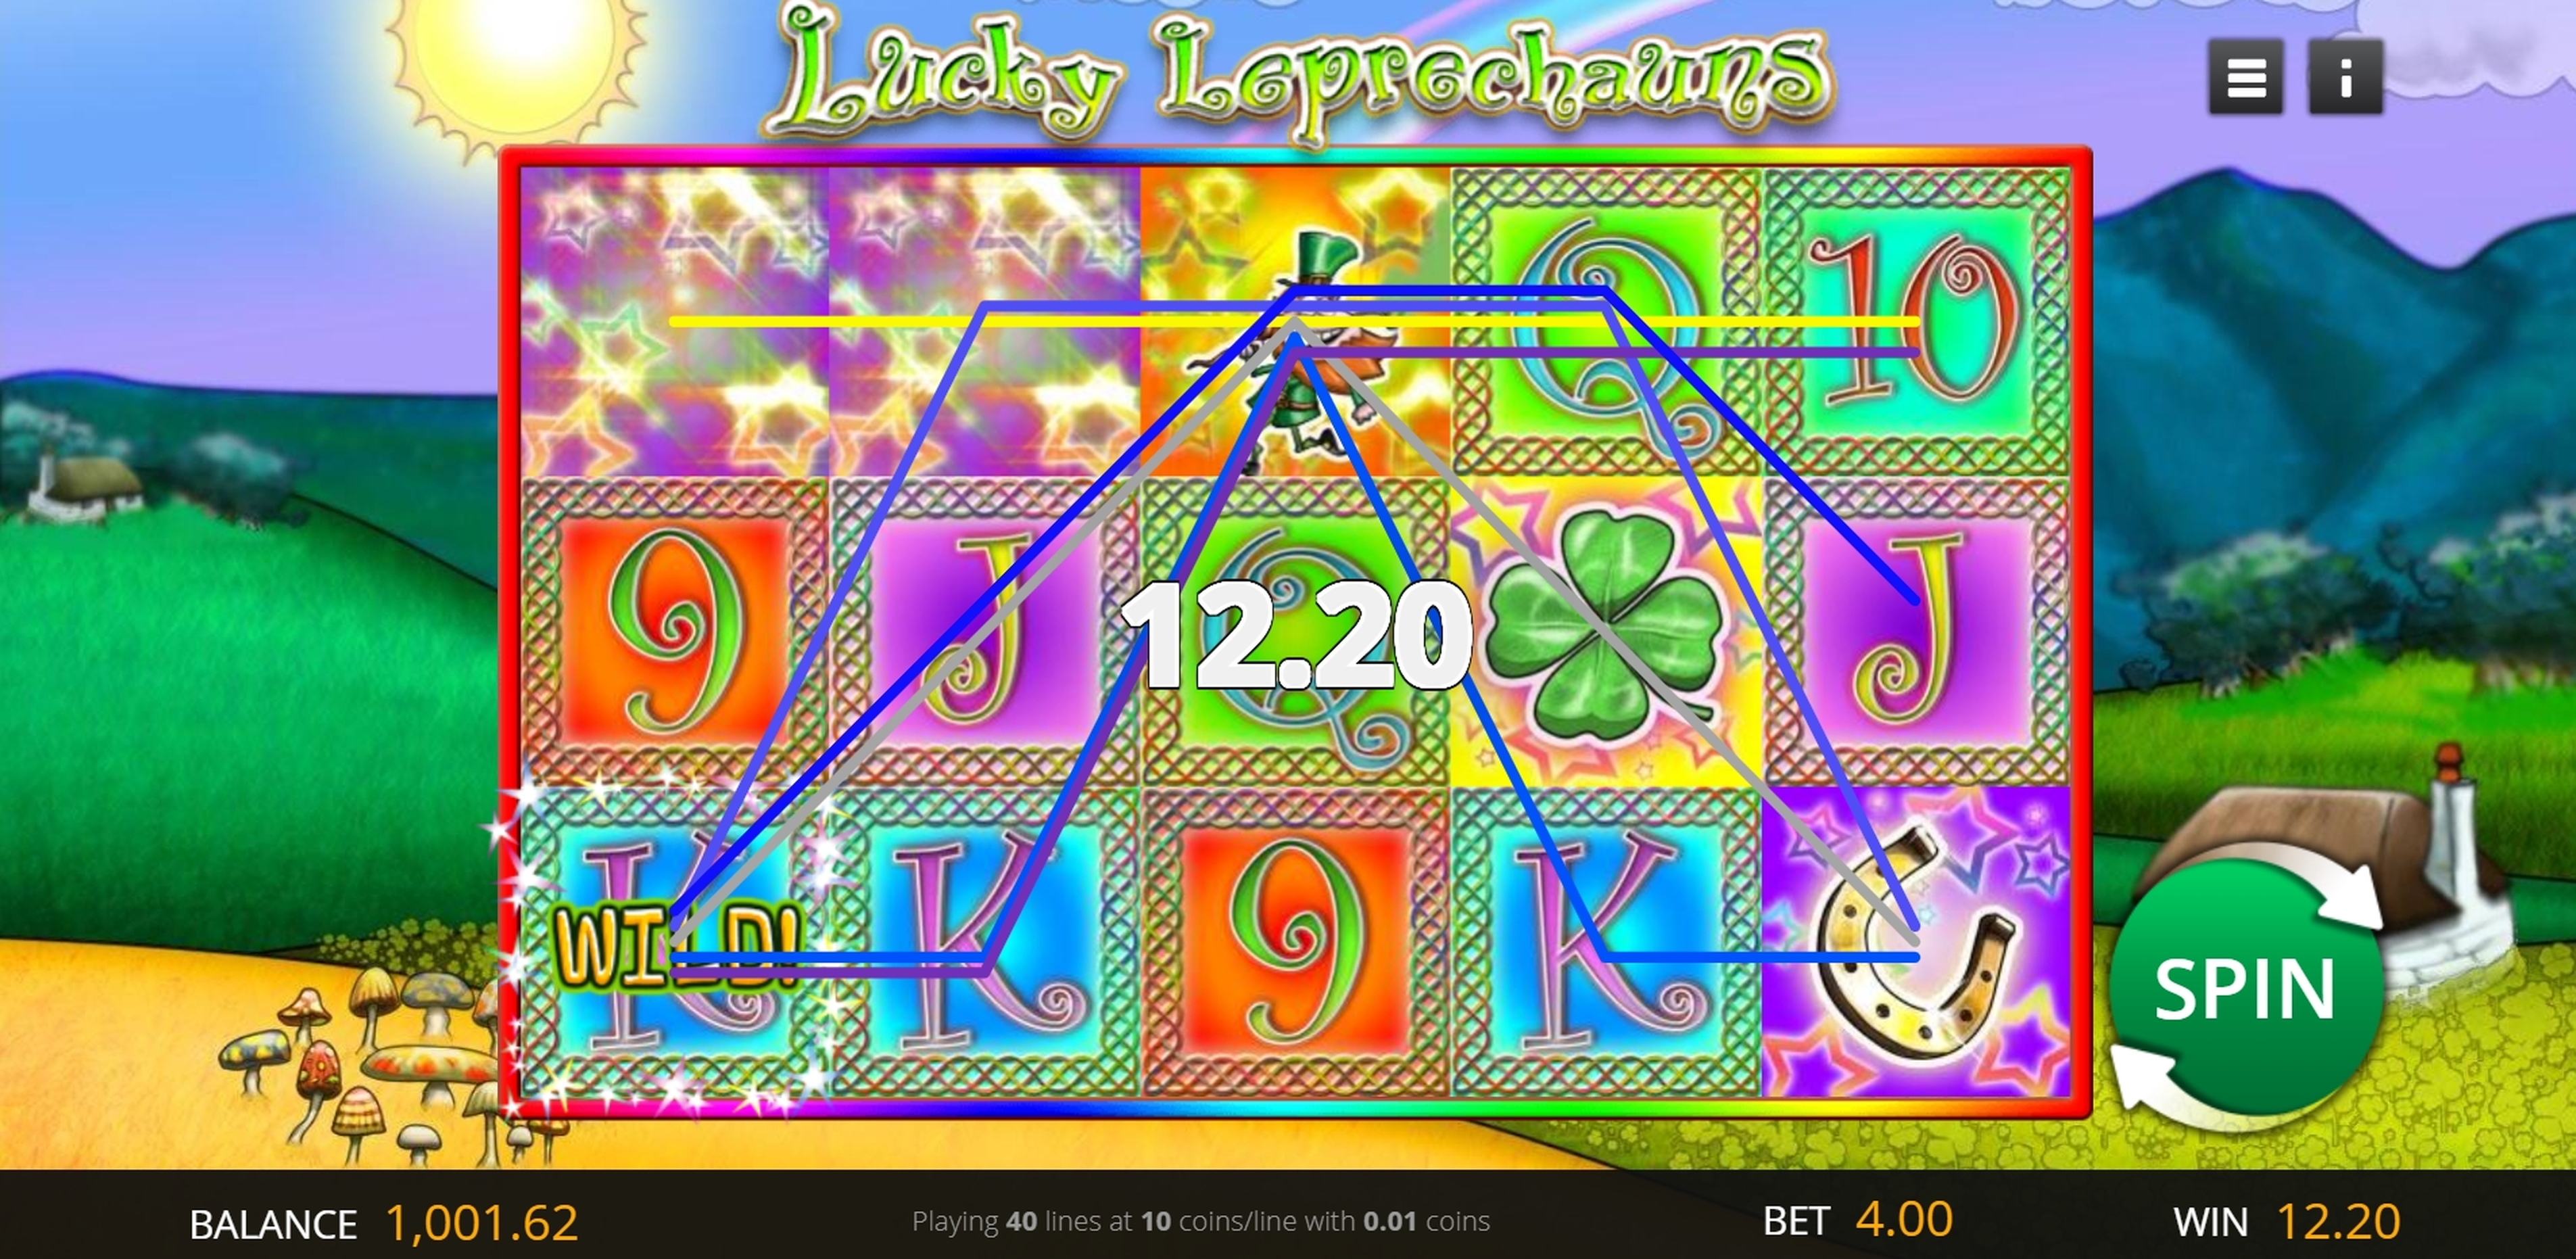 Win Money in Lucky Leprechauns Free Slot Game by Genii